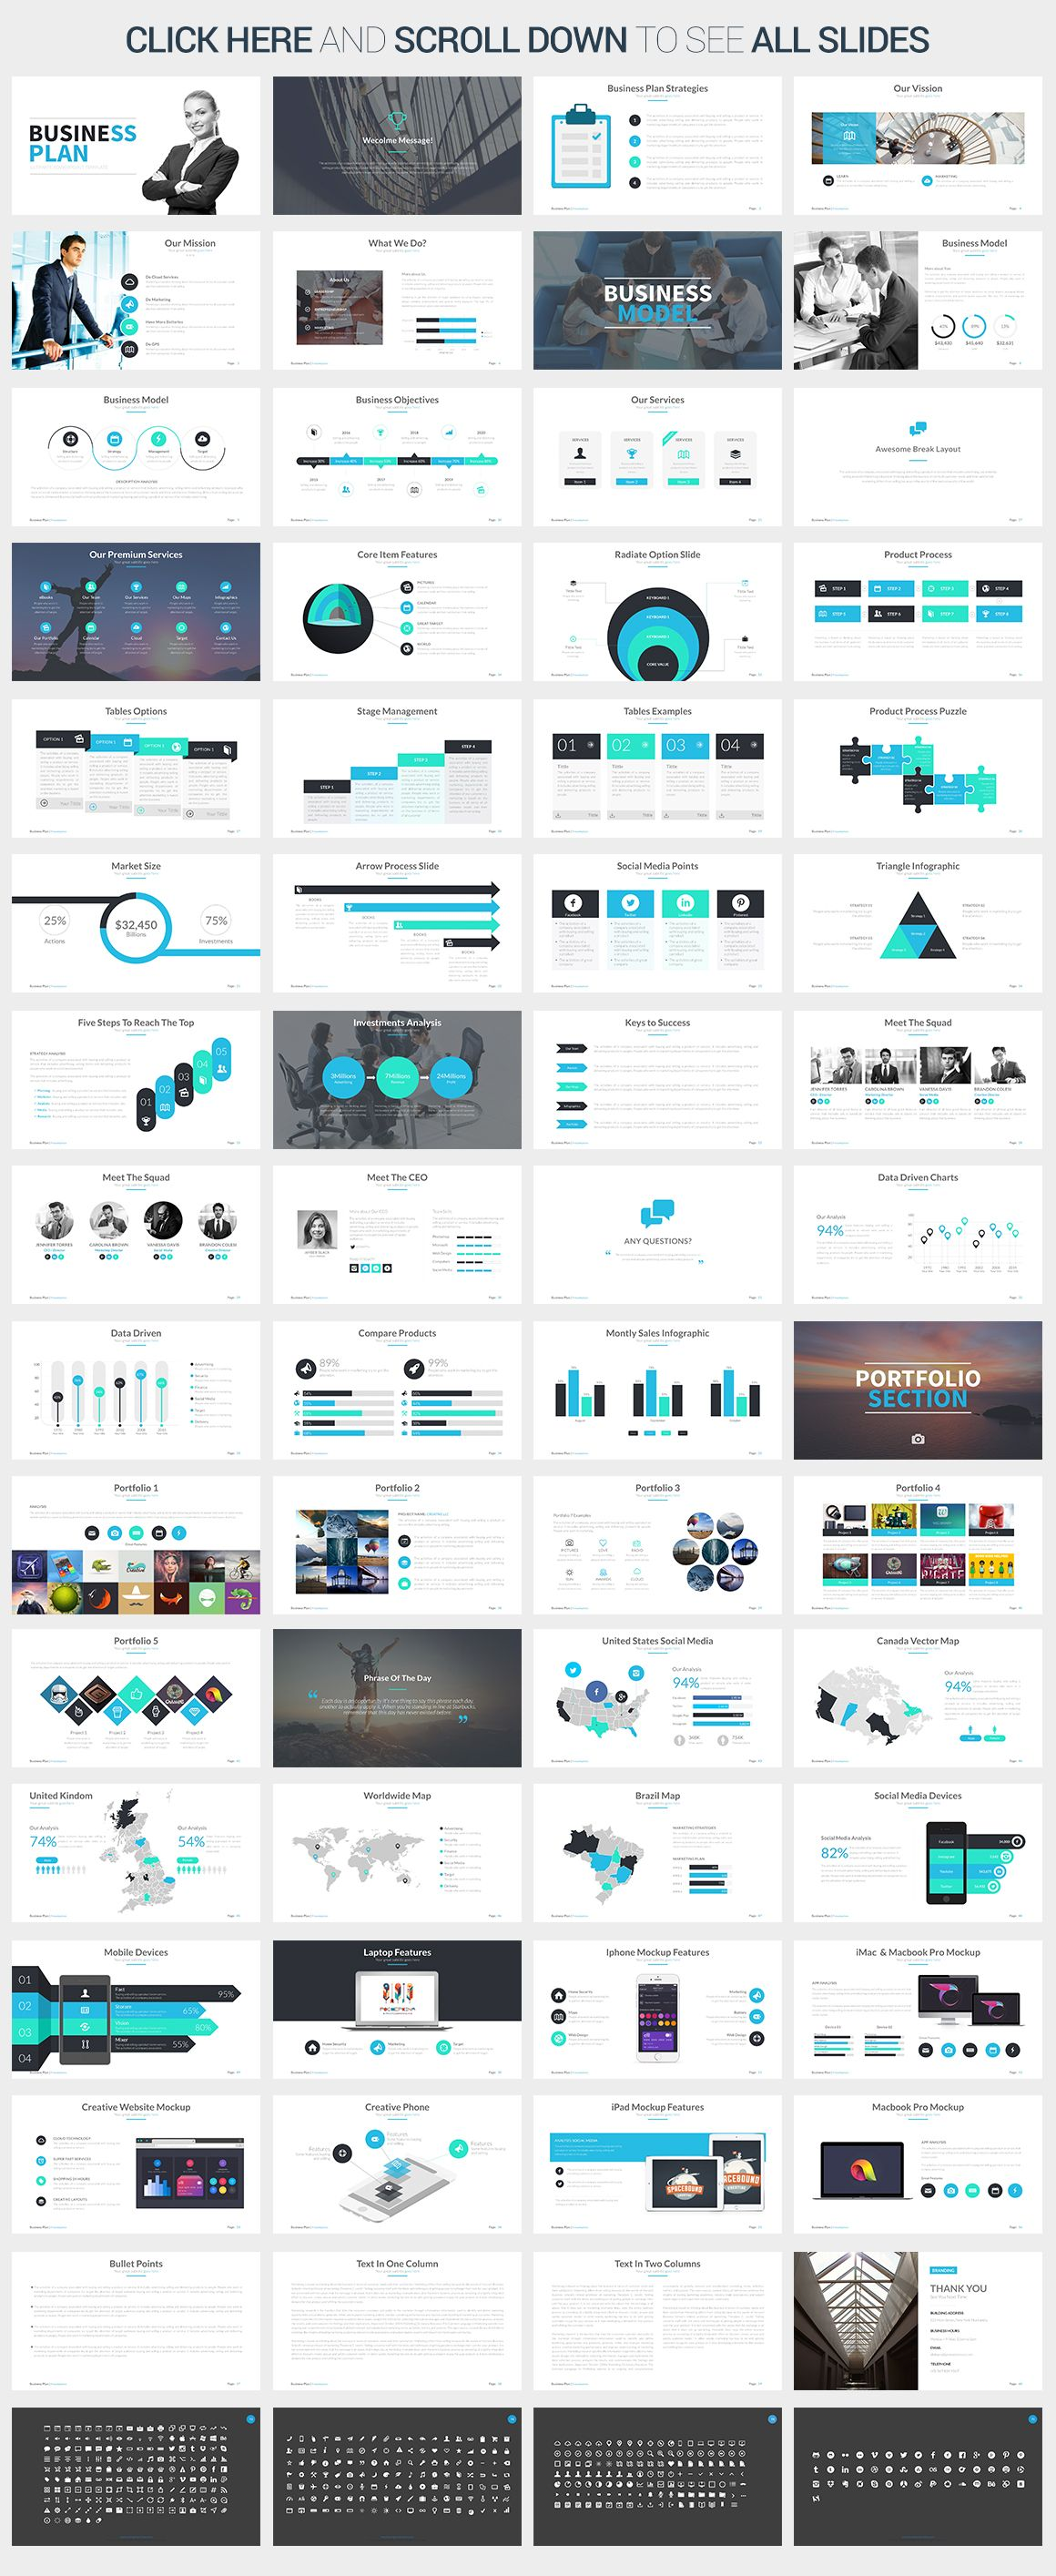 Business plan powerpoint template by slidepro on creativemarket ppt presentation also best design references images graph graphics visual rh pinterest